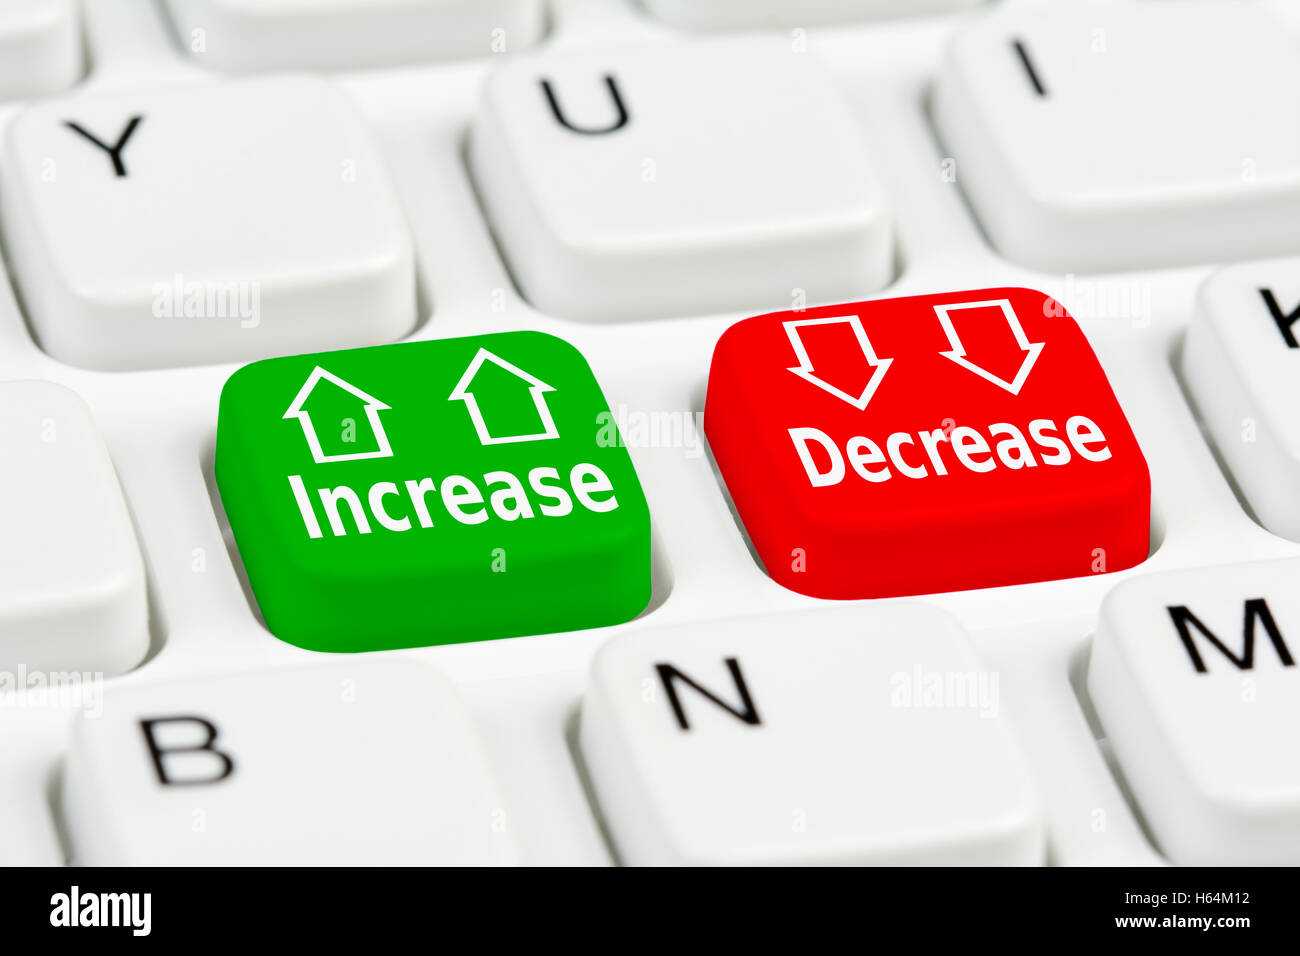 Increase or Decrease option buttons. Interest rates. - Stock Image